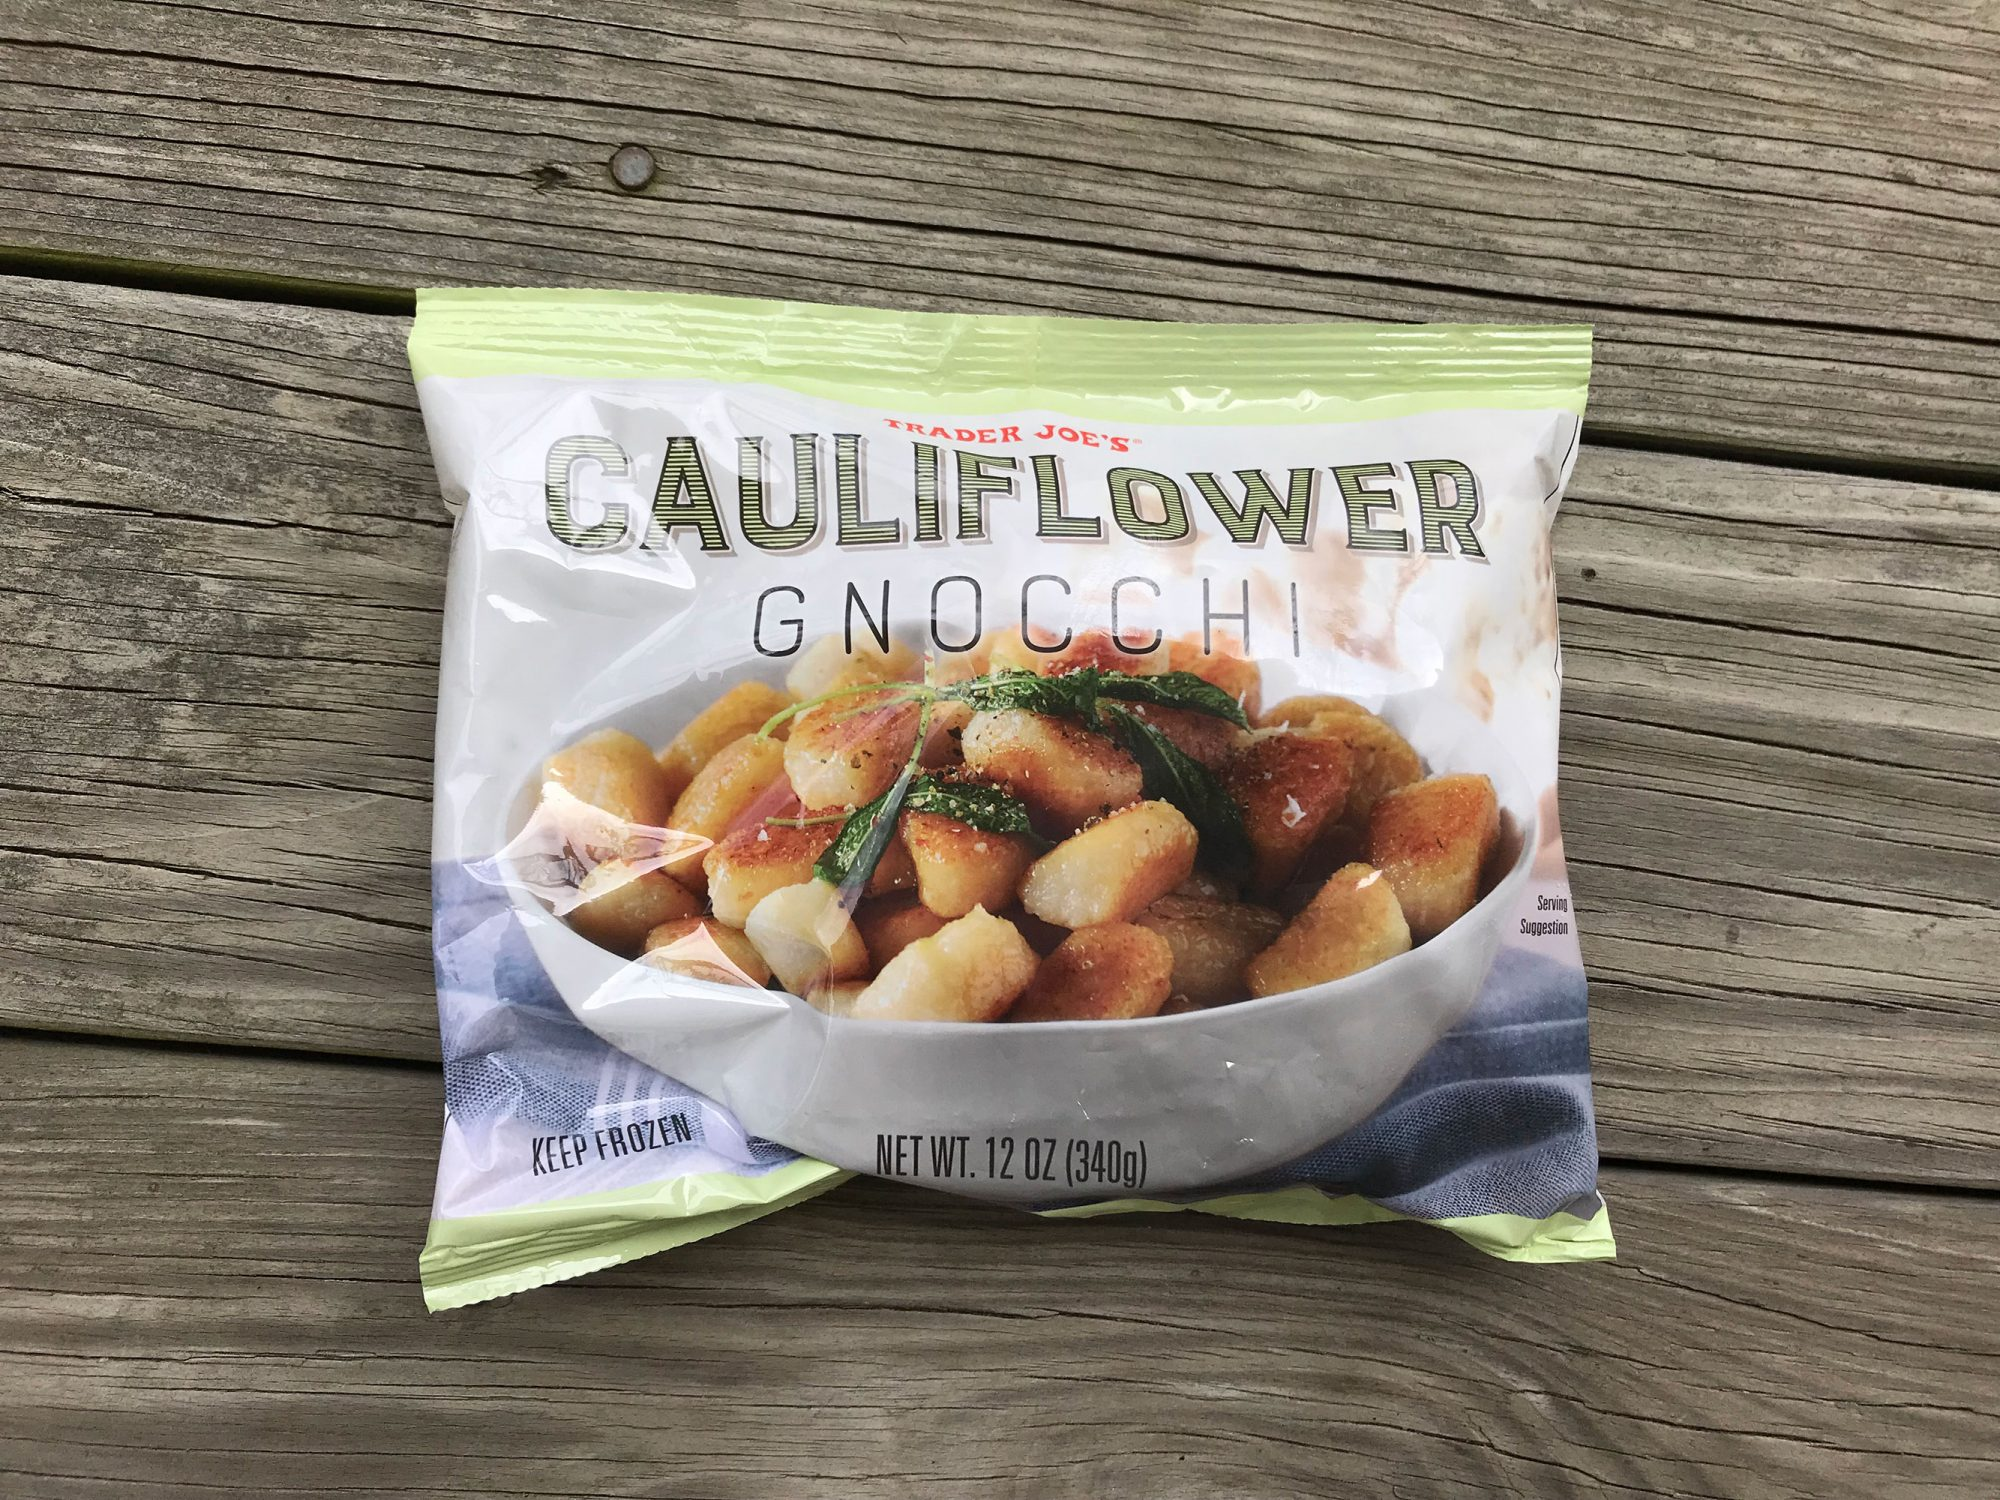 We Tried the New Trader Joe's Cauliflower Gnocchi That's All Over Instagram—Here's What We Thought